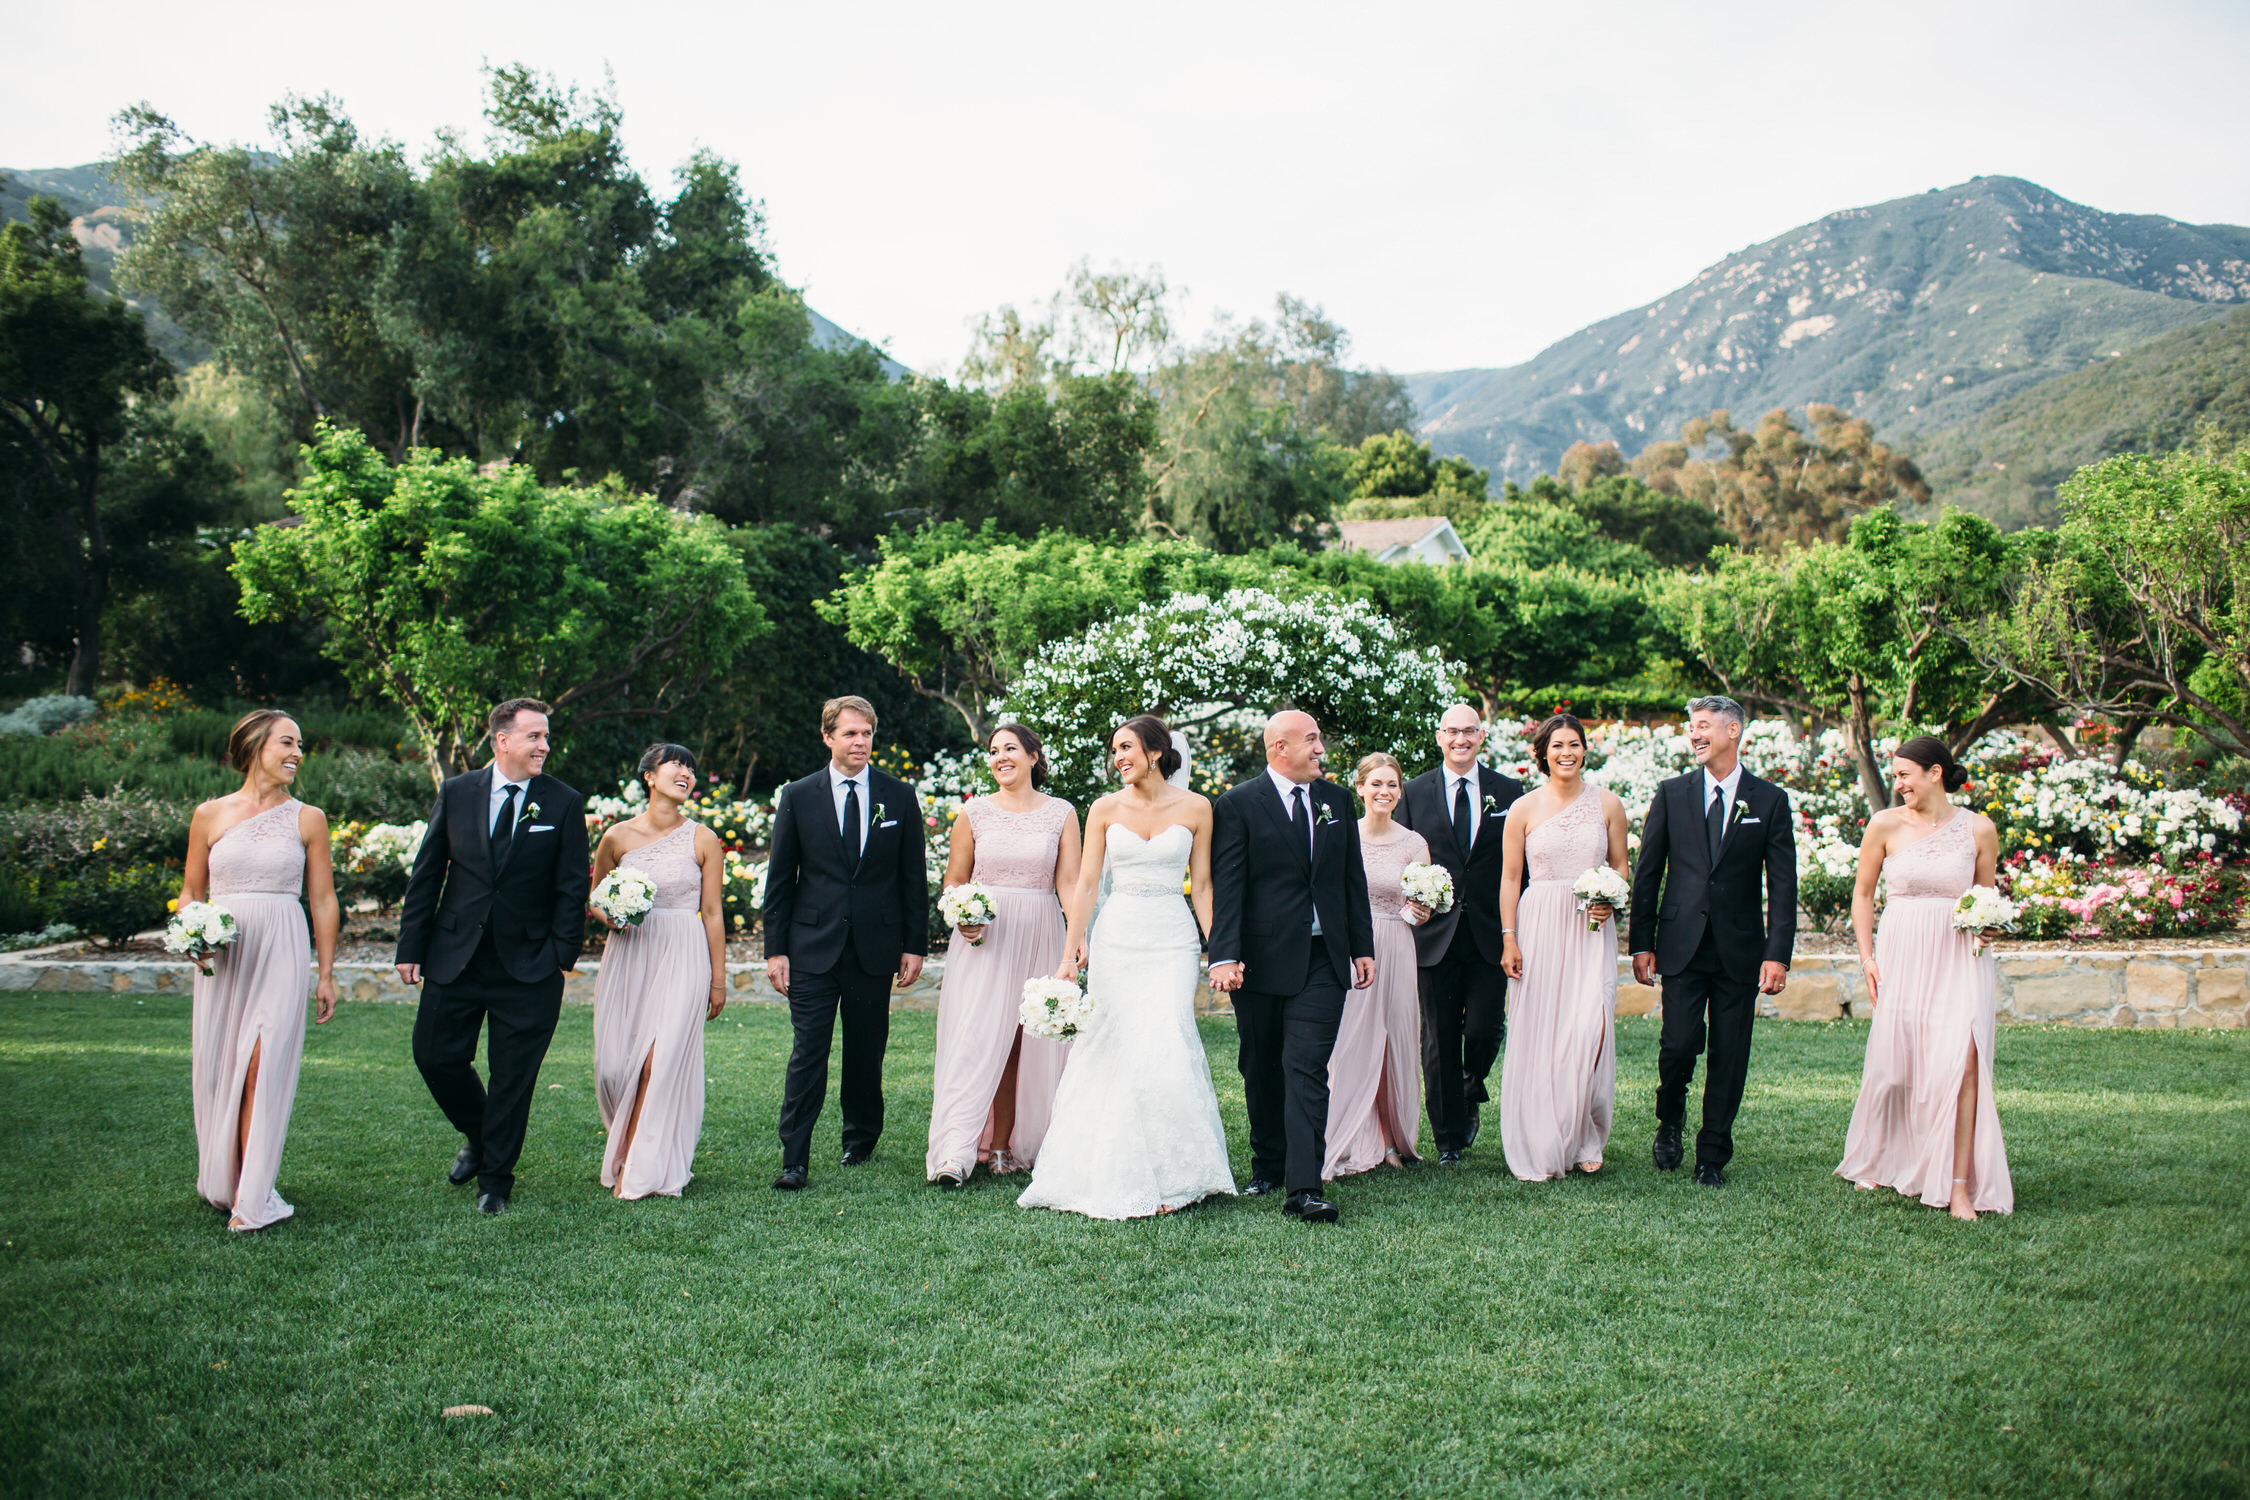 Wedding party photos, group photos at a wedding, relaxed wedding photos, Santa Barbara Wedding Photographer, California